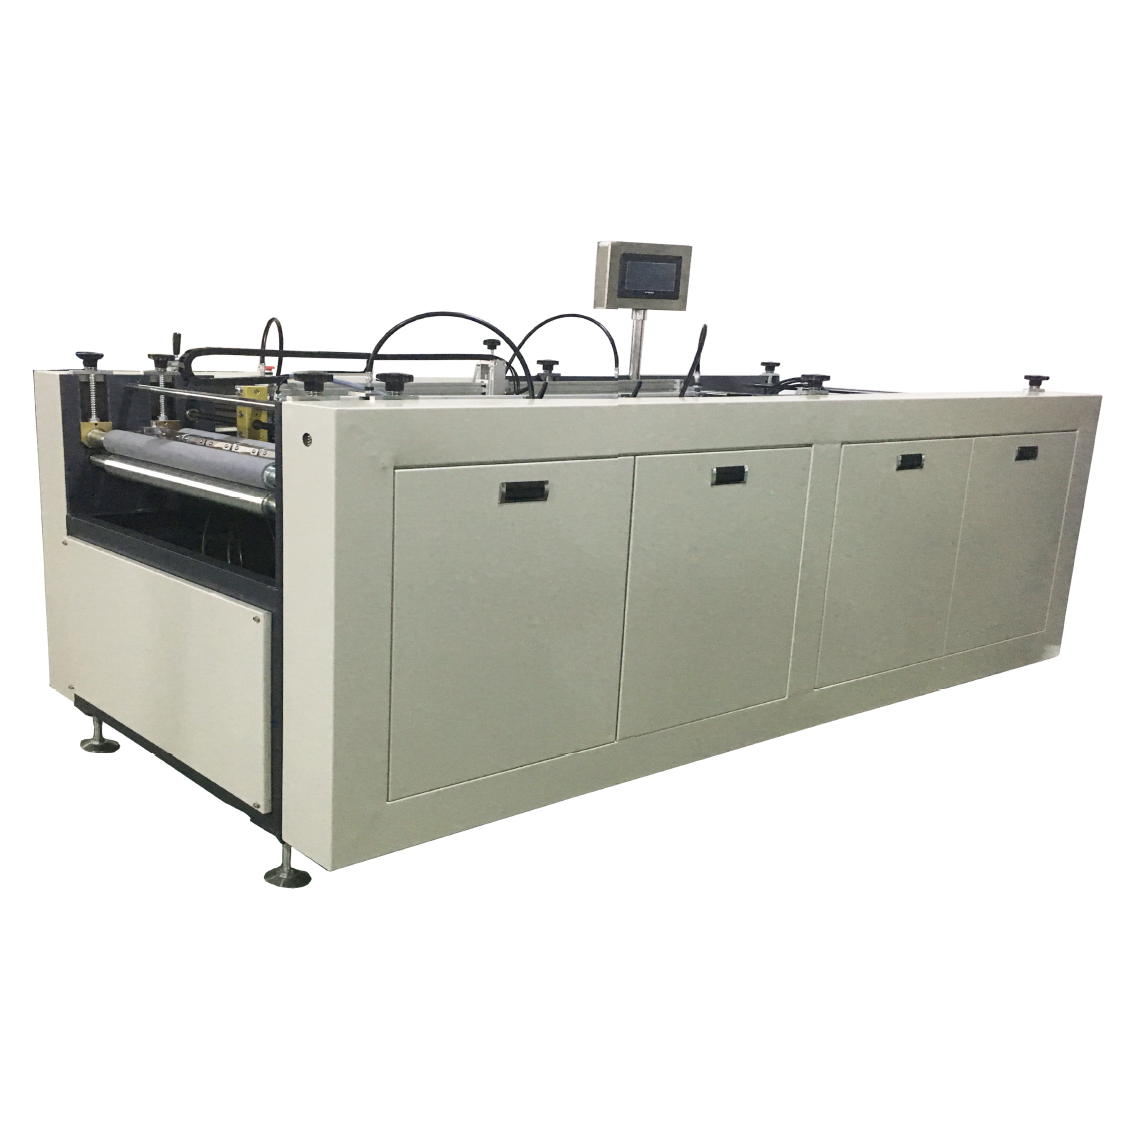 Foursided taping machine wrapping and coating equipment